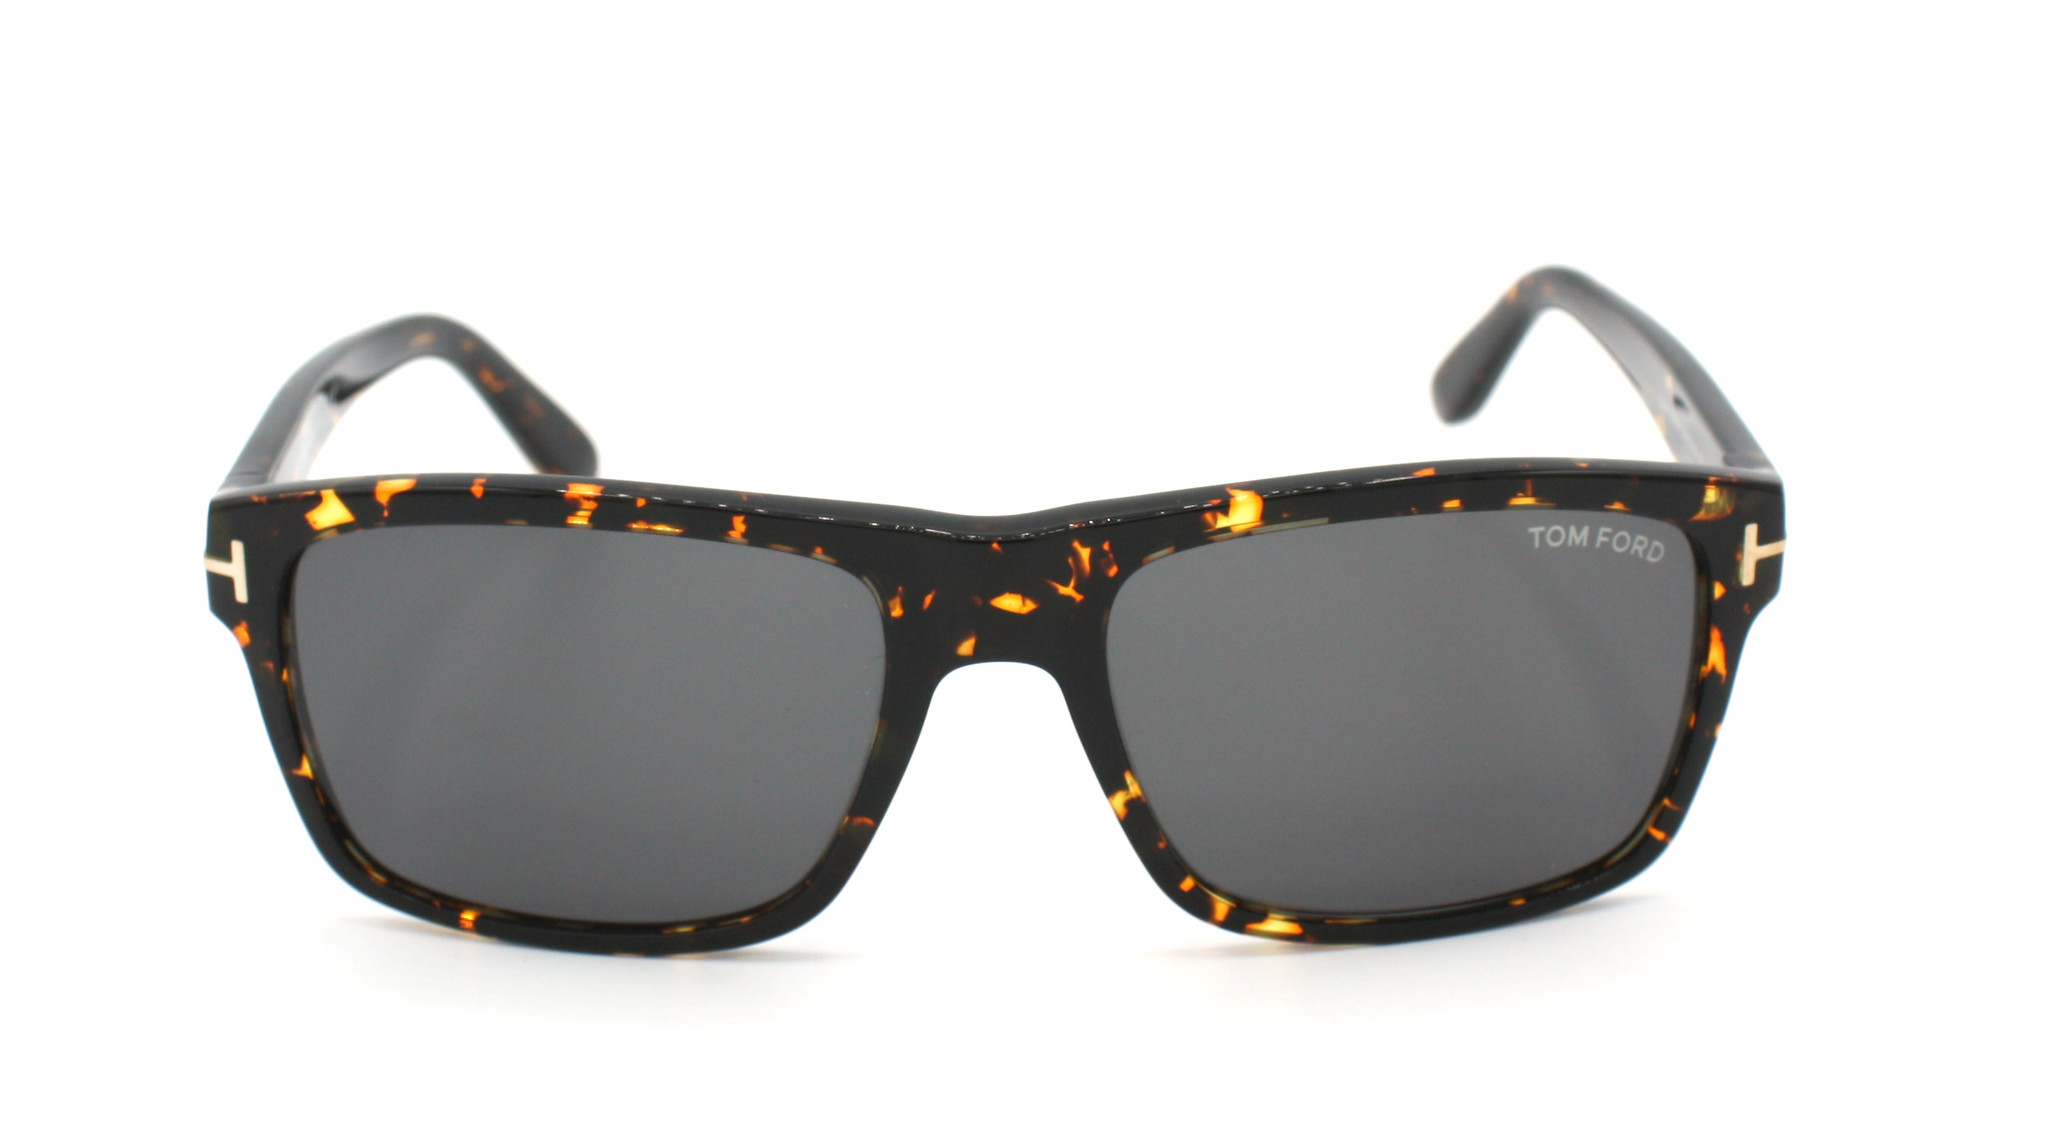 Tom Ford - TF678 - 52A-1